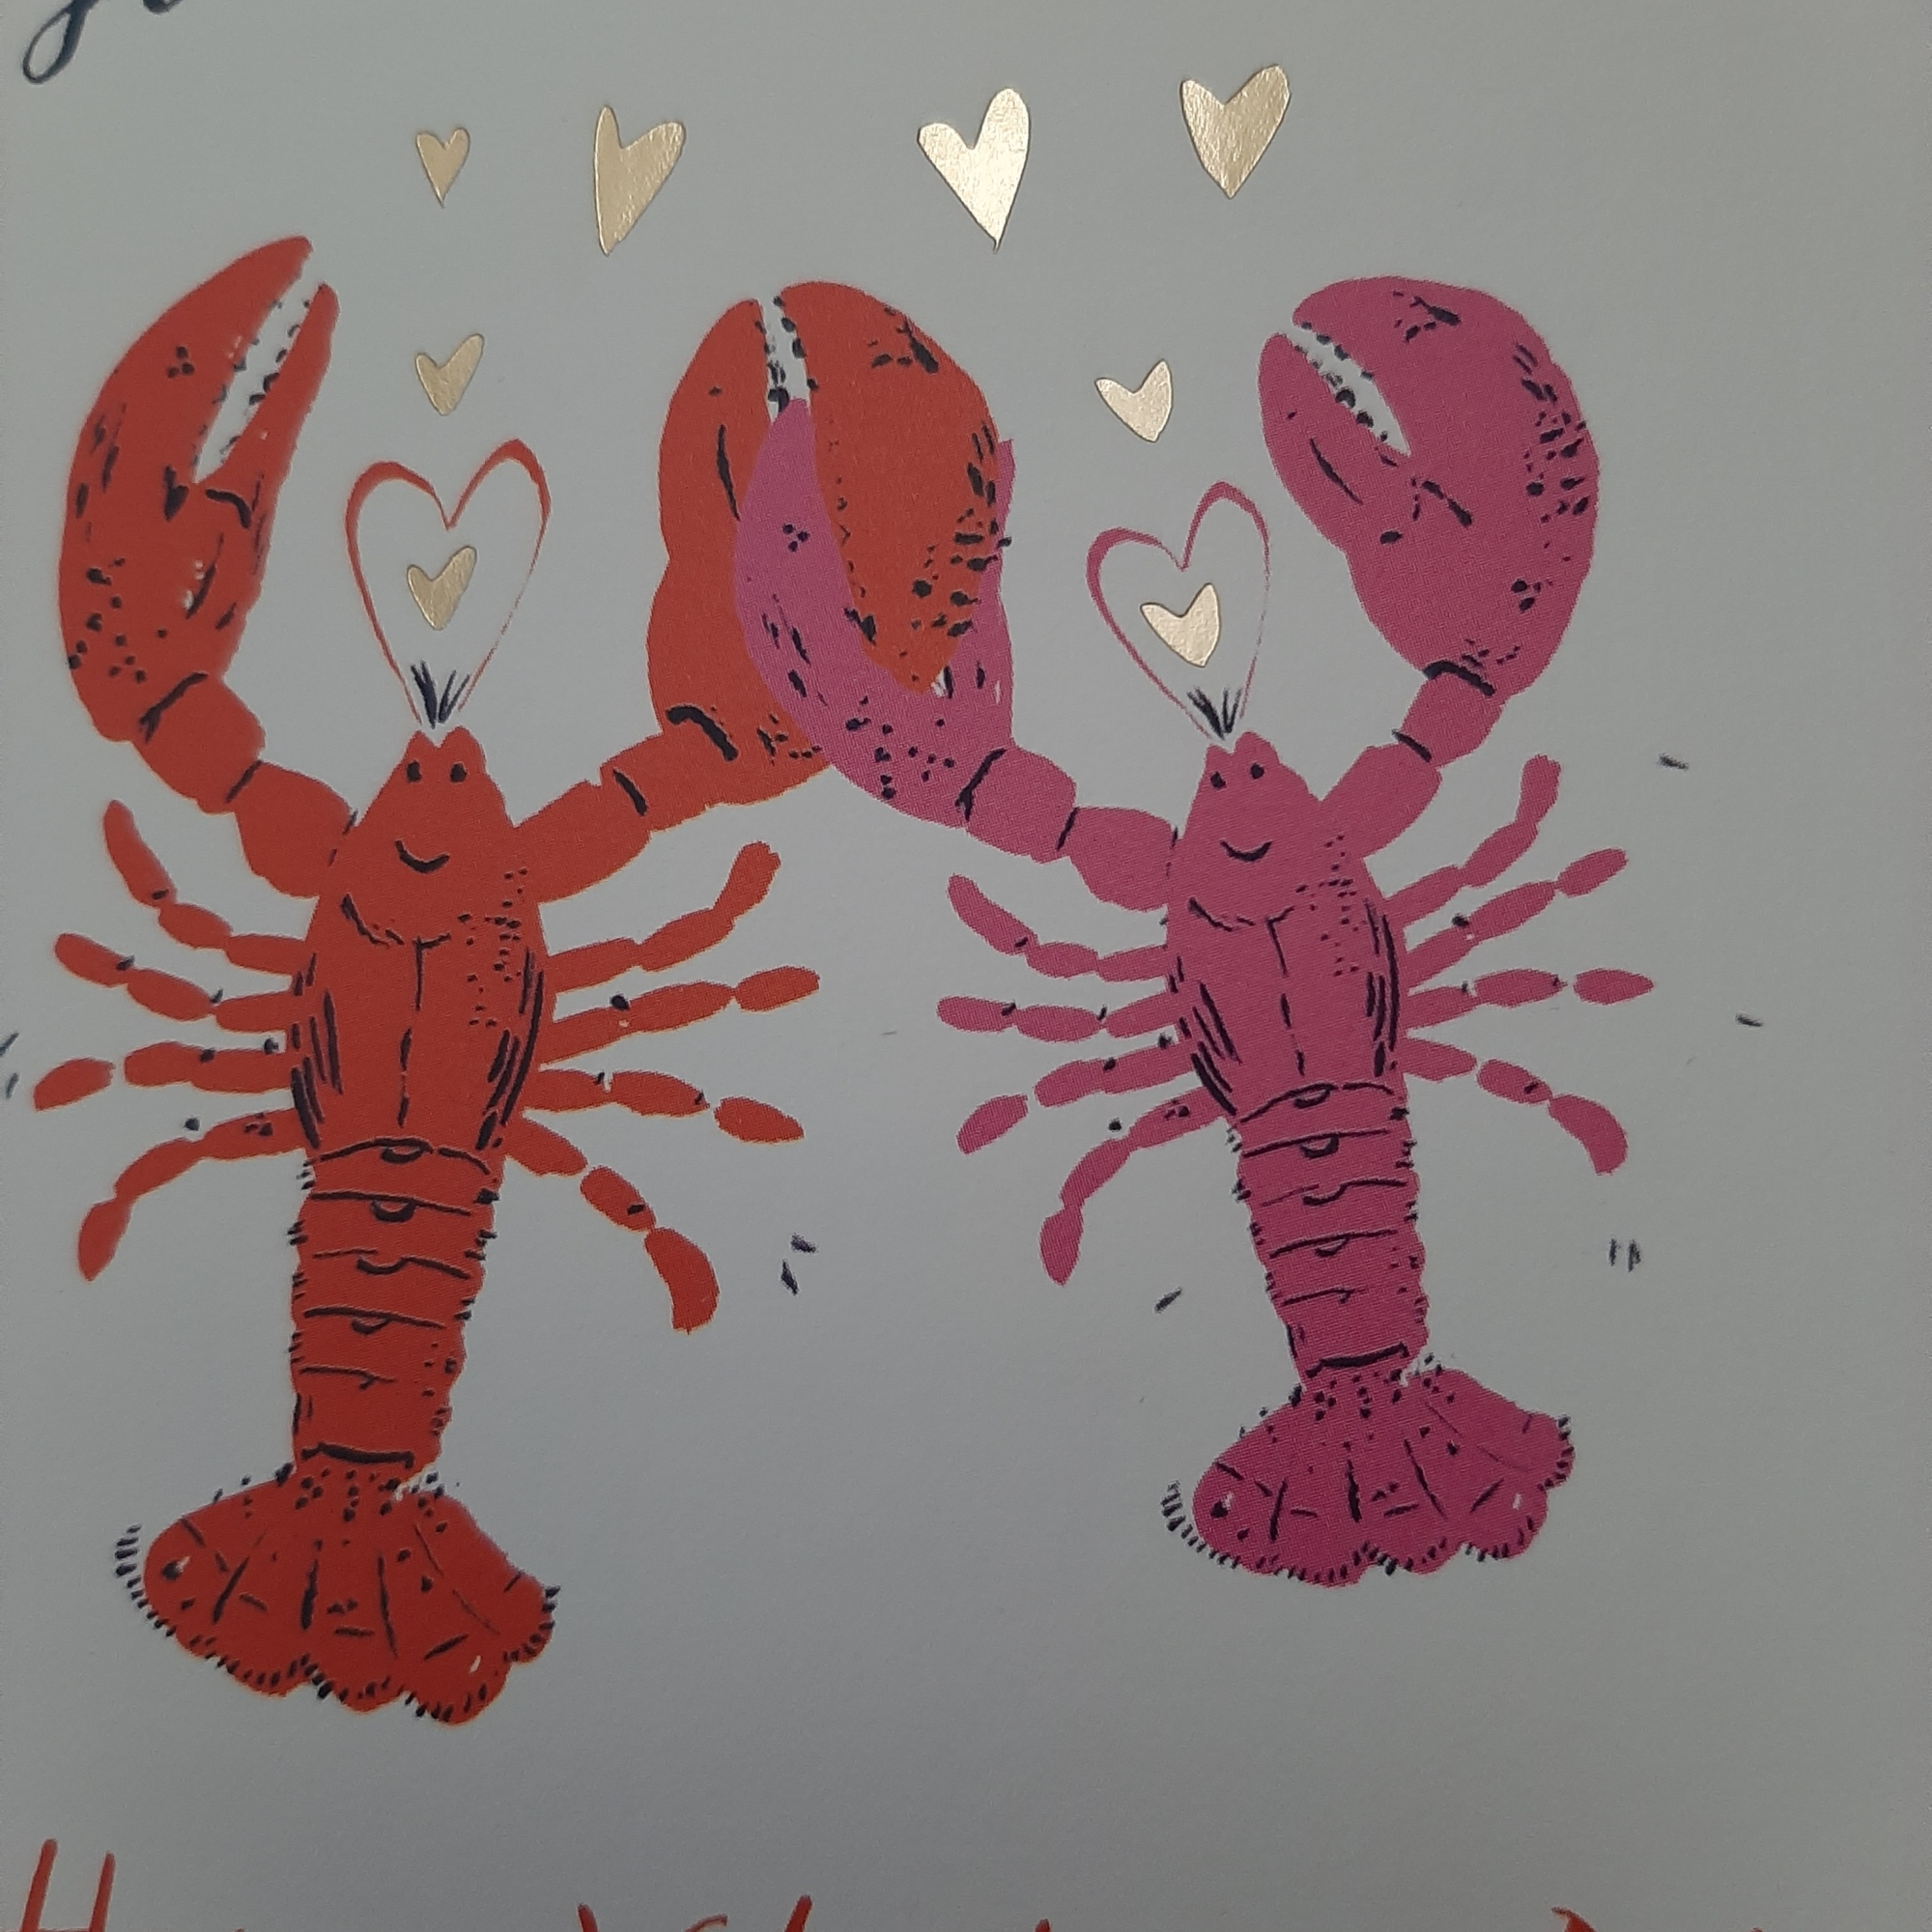 Lobsters of Love: paint them, admire them, most of all, eat them!